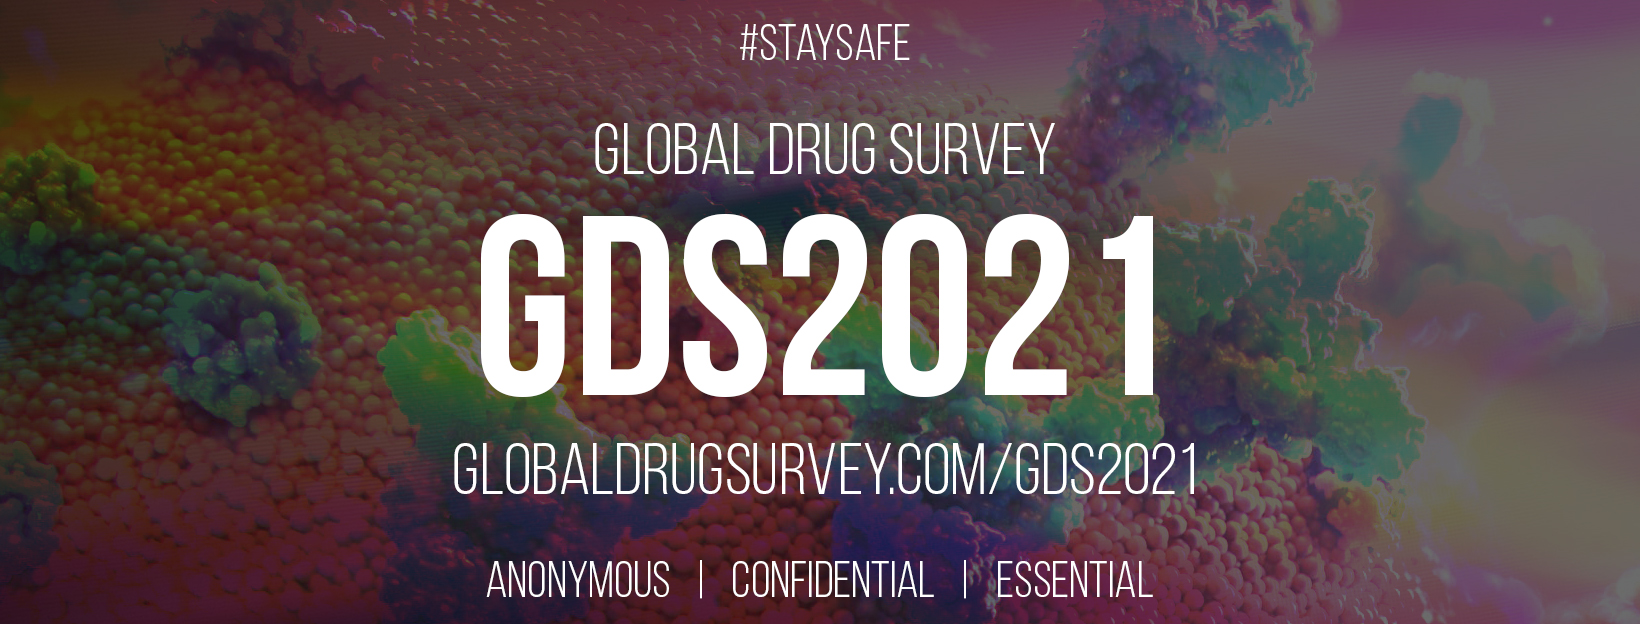 Global Drug Survey 2021 launches